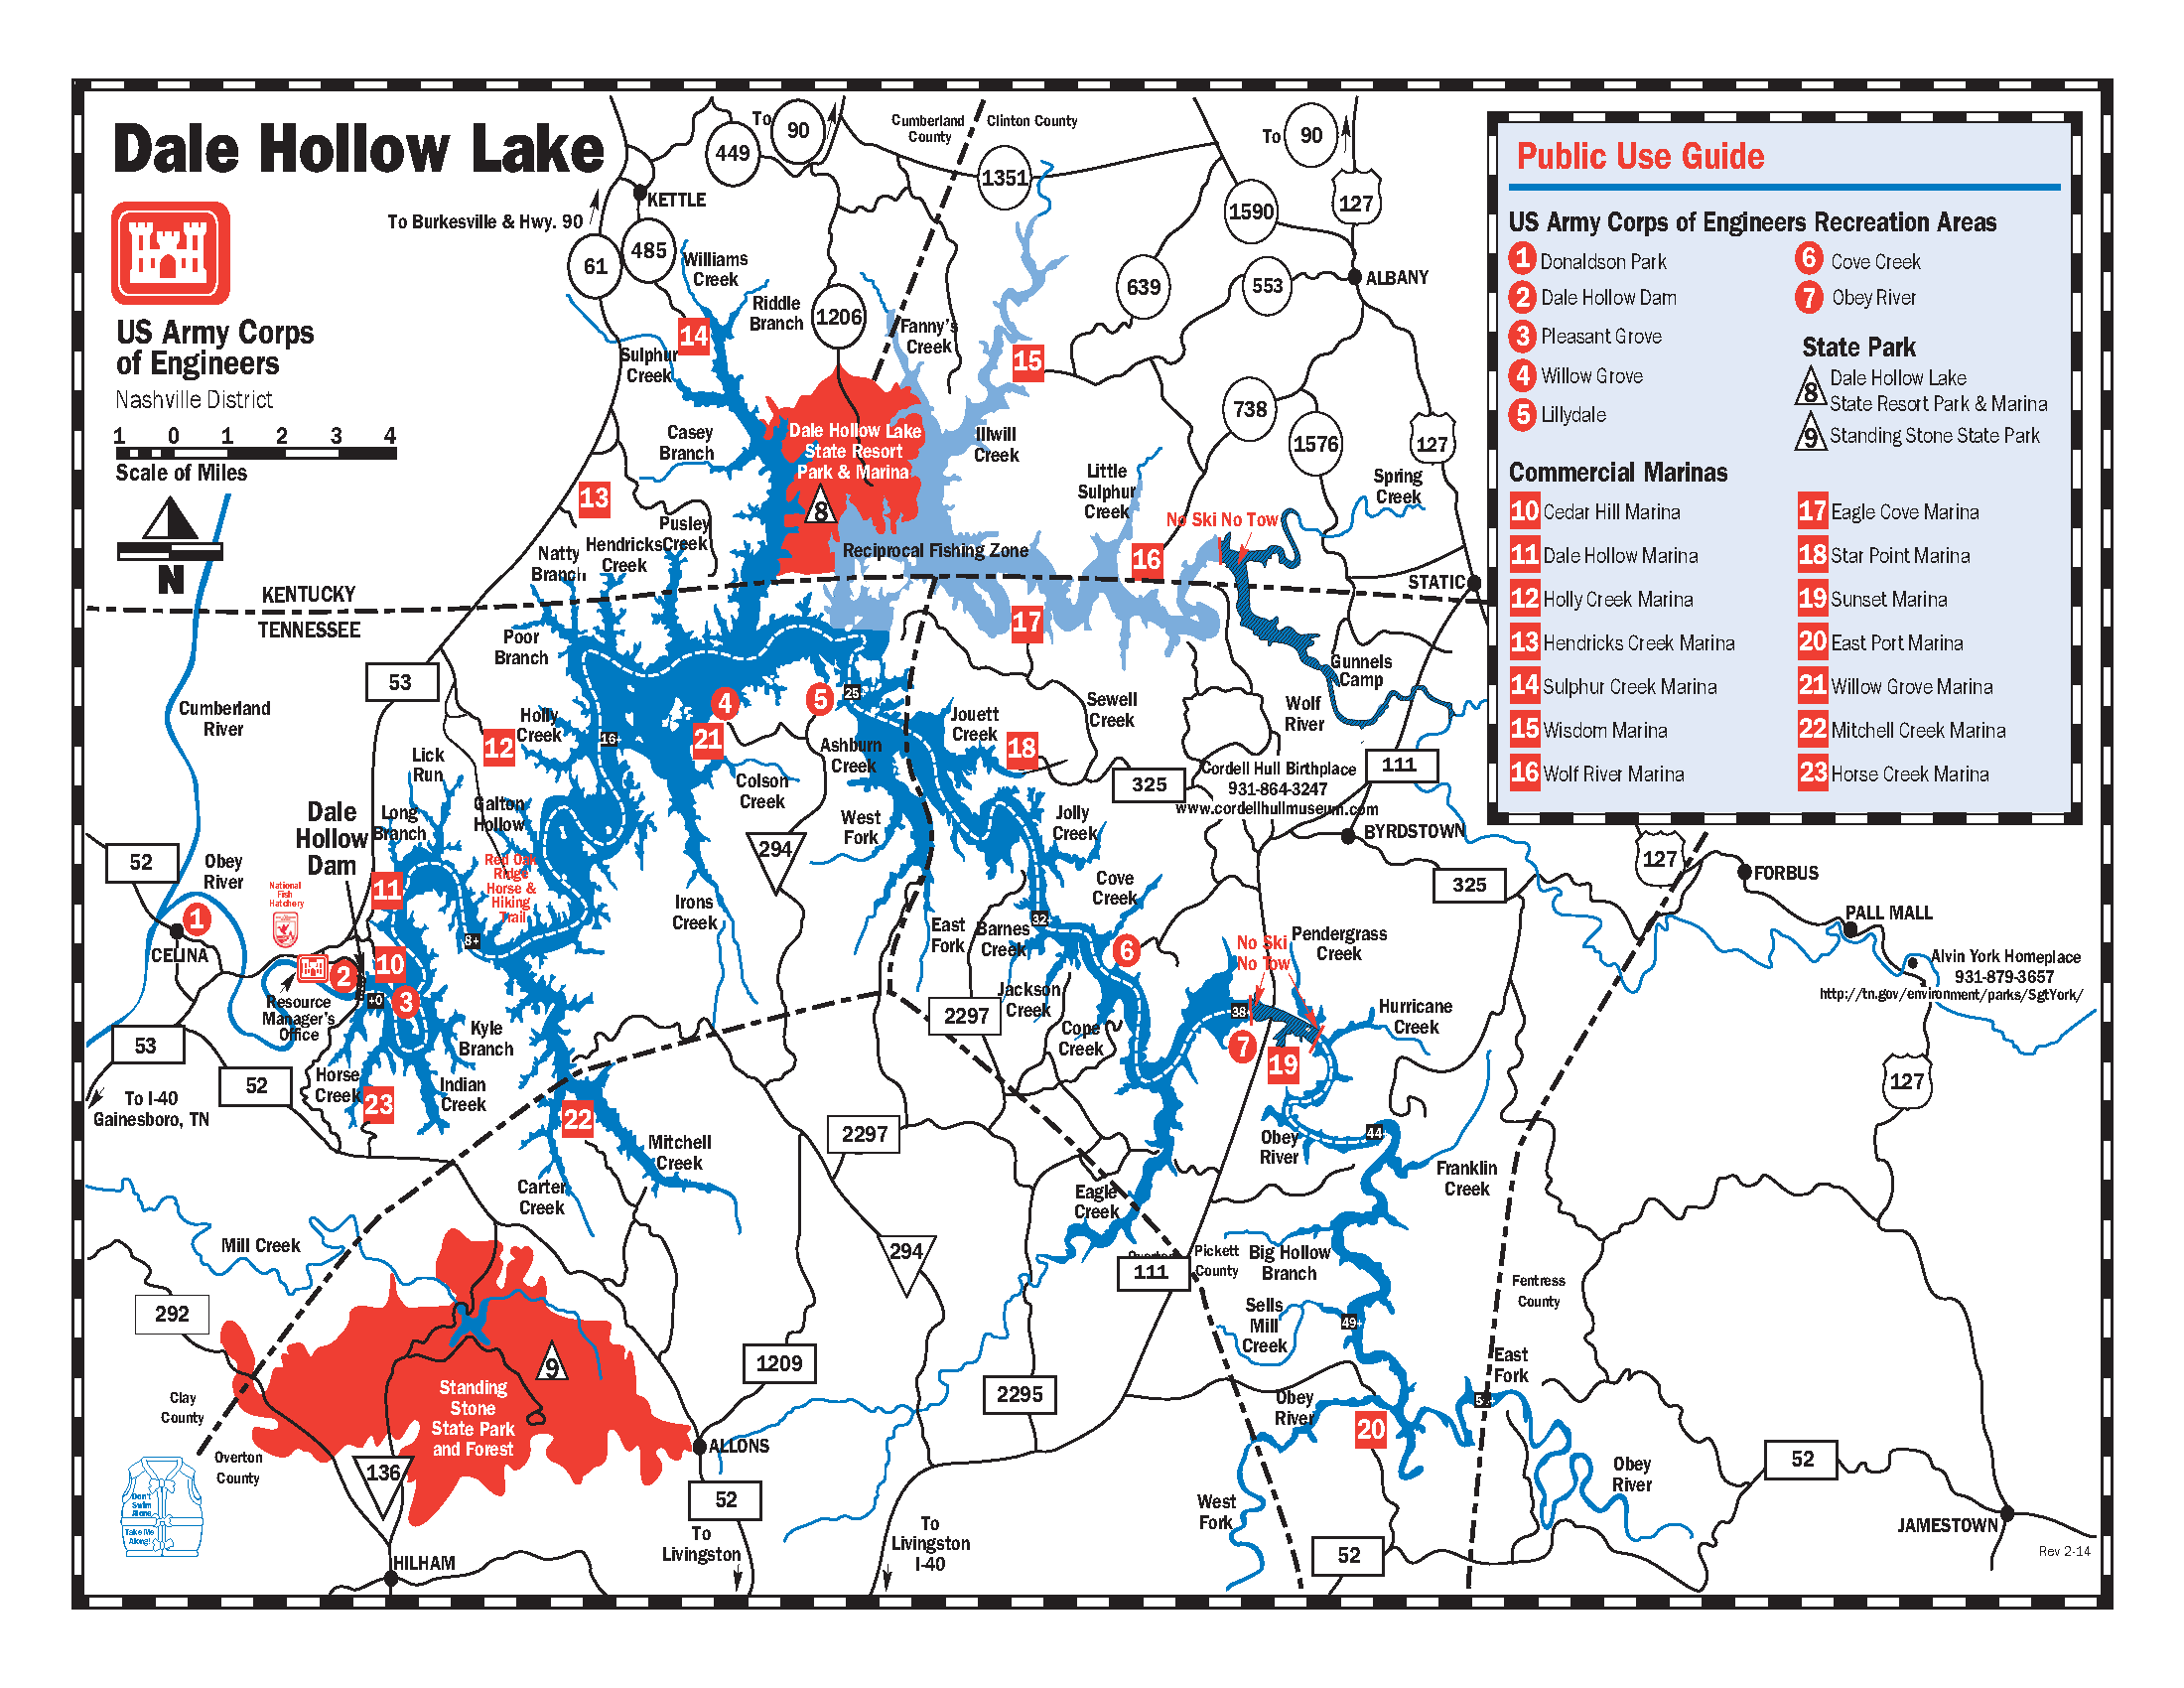 Map Of Dale Hollow Lake Dale Hollow Lake: Public use guide   Booklets, Manuals, and Guides